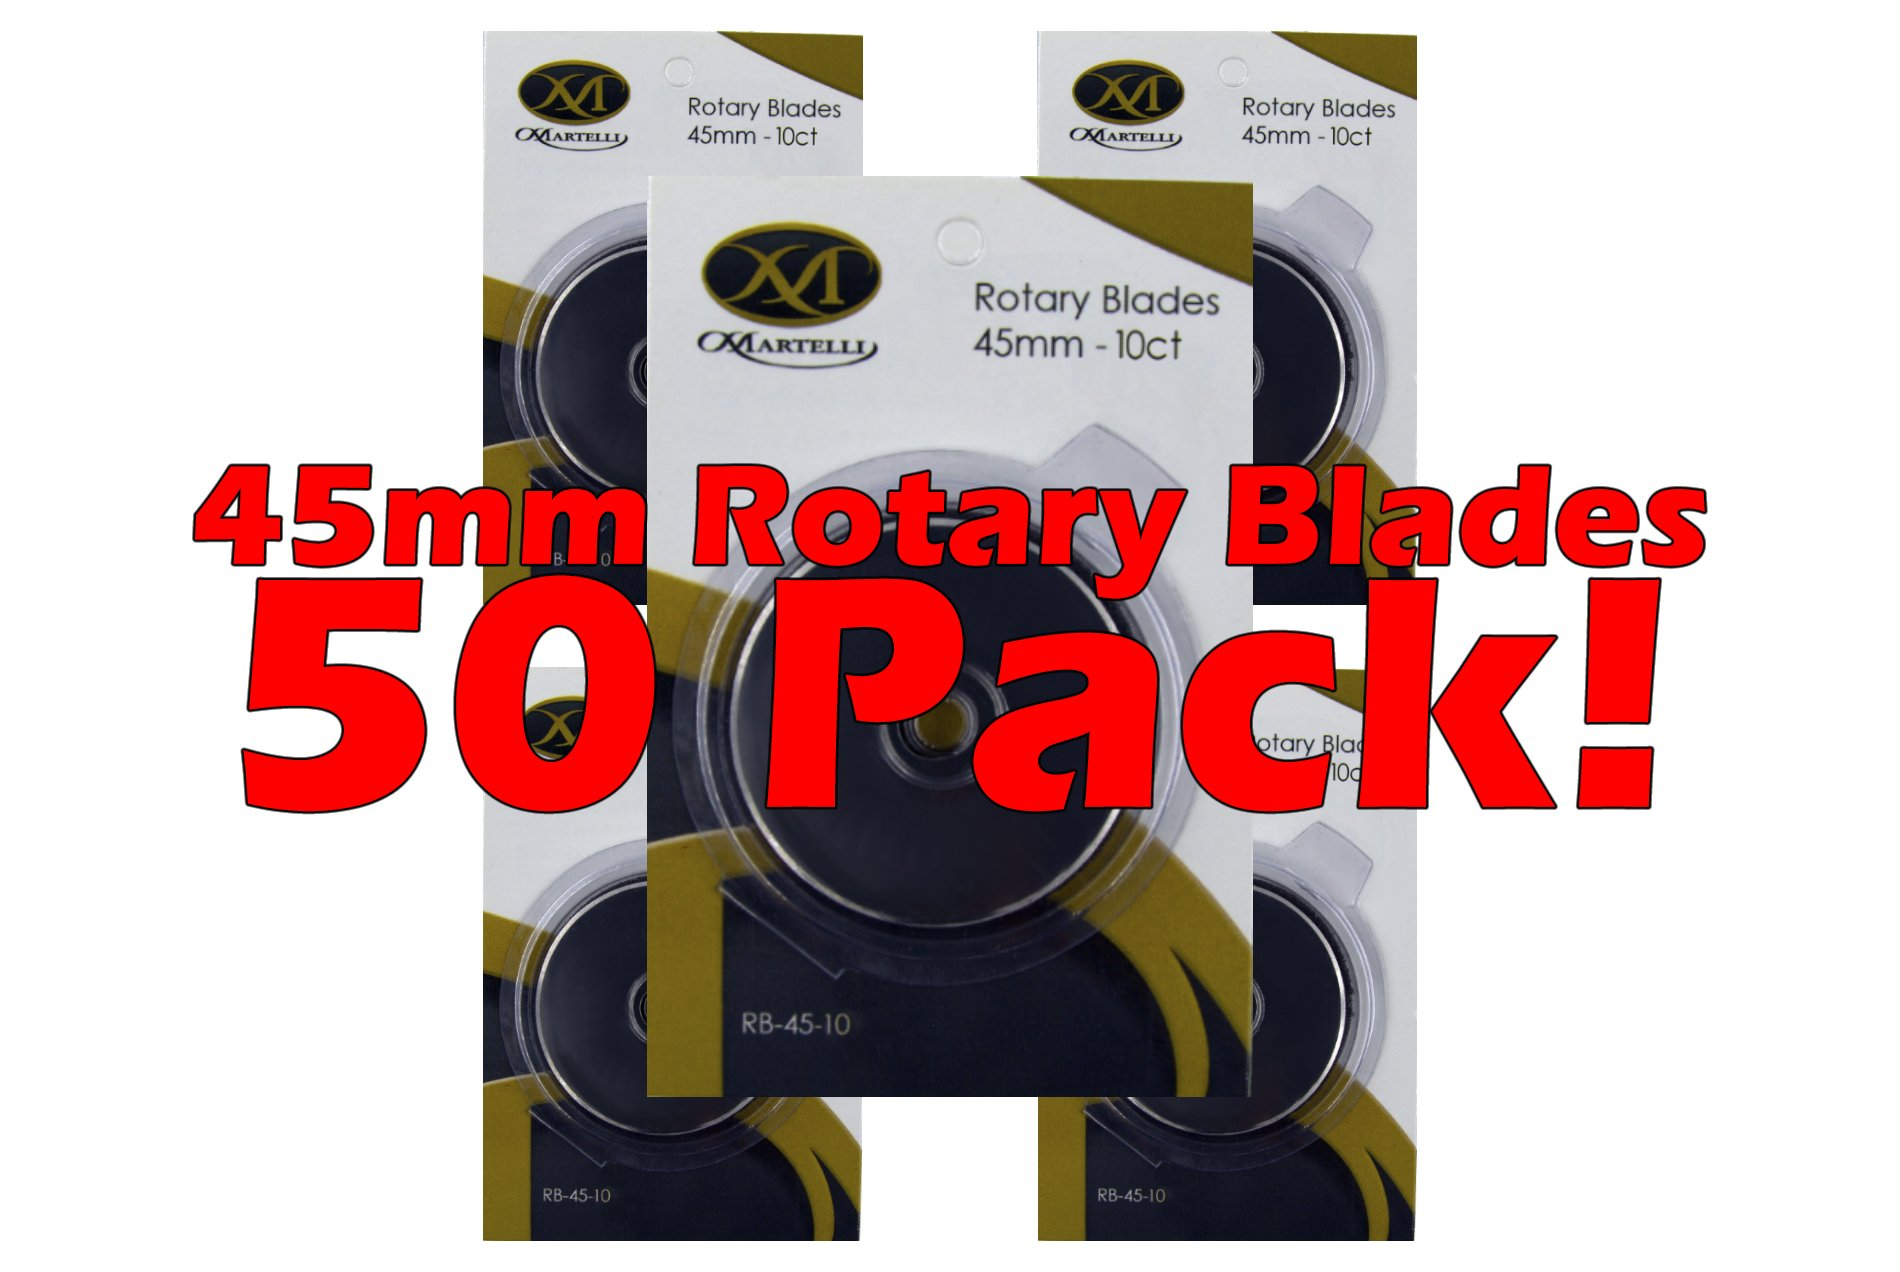 Martelli Ergo Rotary Cutter Replacement Blades 50 pack 45mm